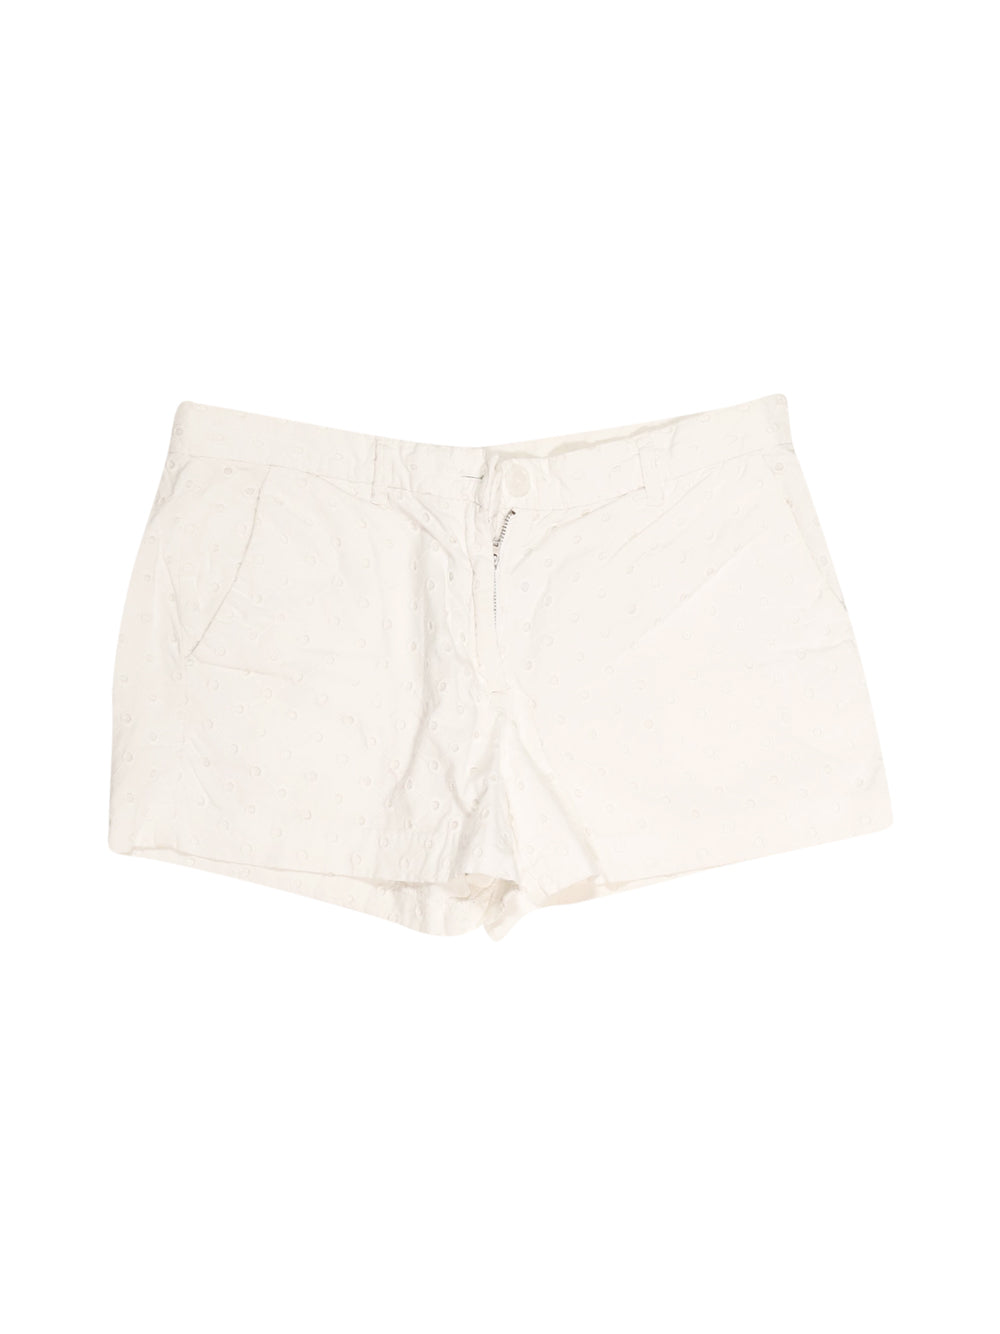 Front photo of Preloved Gap White Woman's shorts - size 6/XS